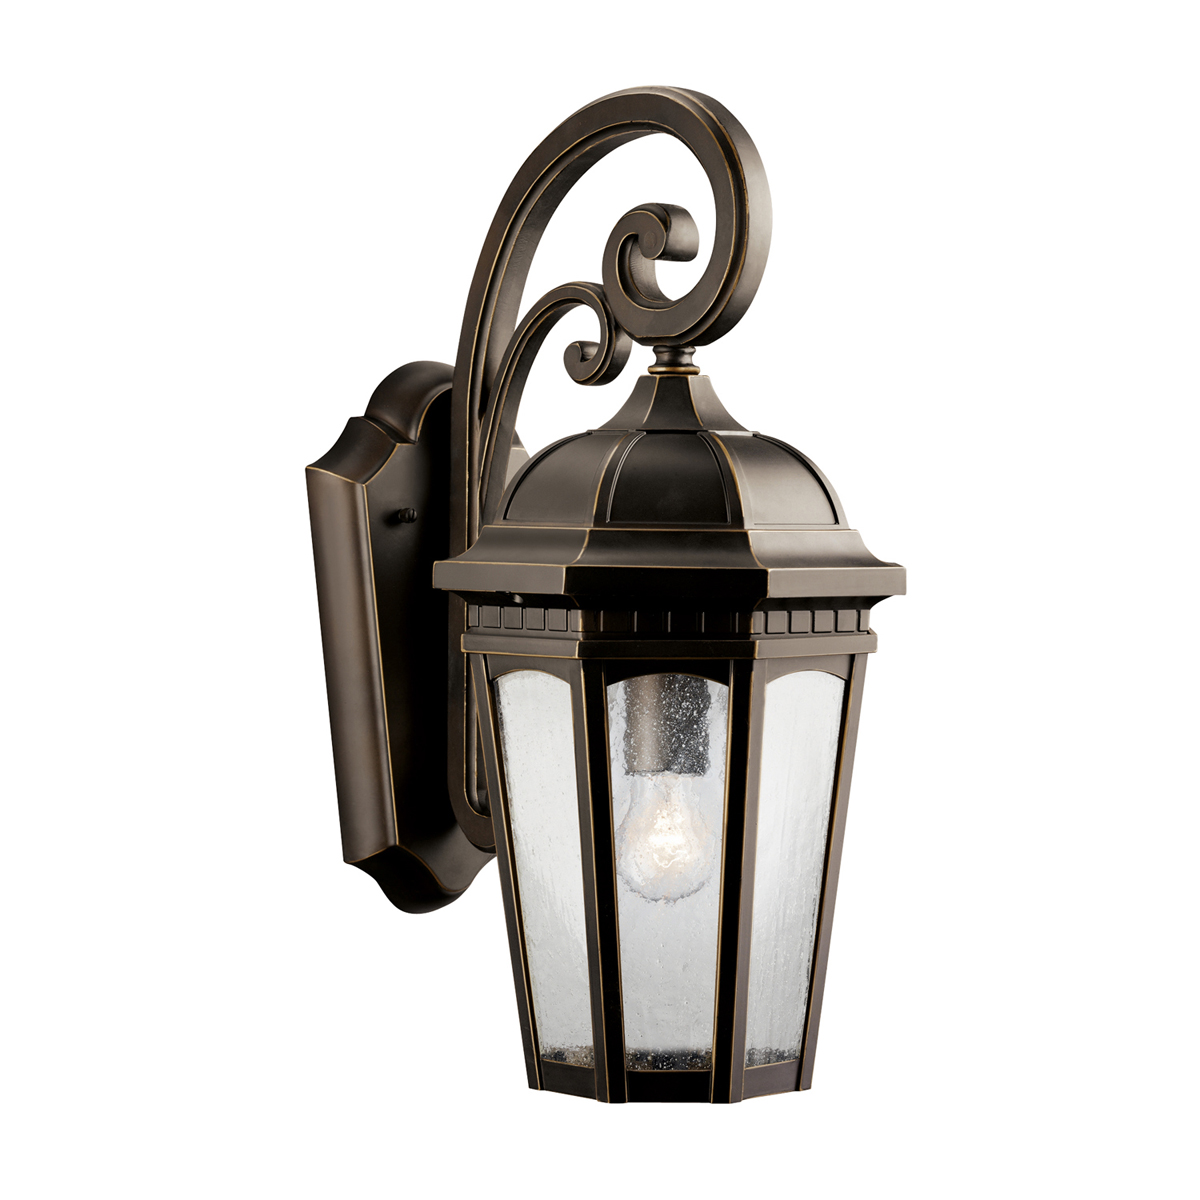 Kichler Exterior Wall Sconces : Kichler Lighting (9033RZ) Courtyard 1-Light Medium Outdoor Wall Sconce in Rubbed Bronze